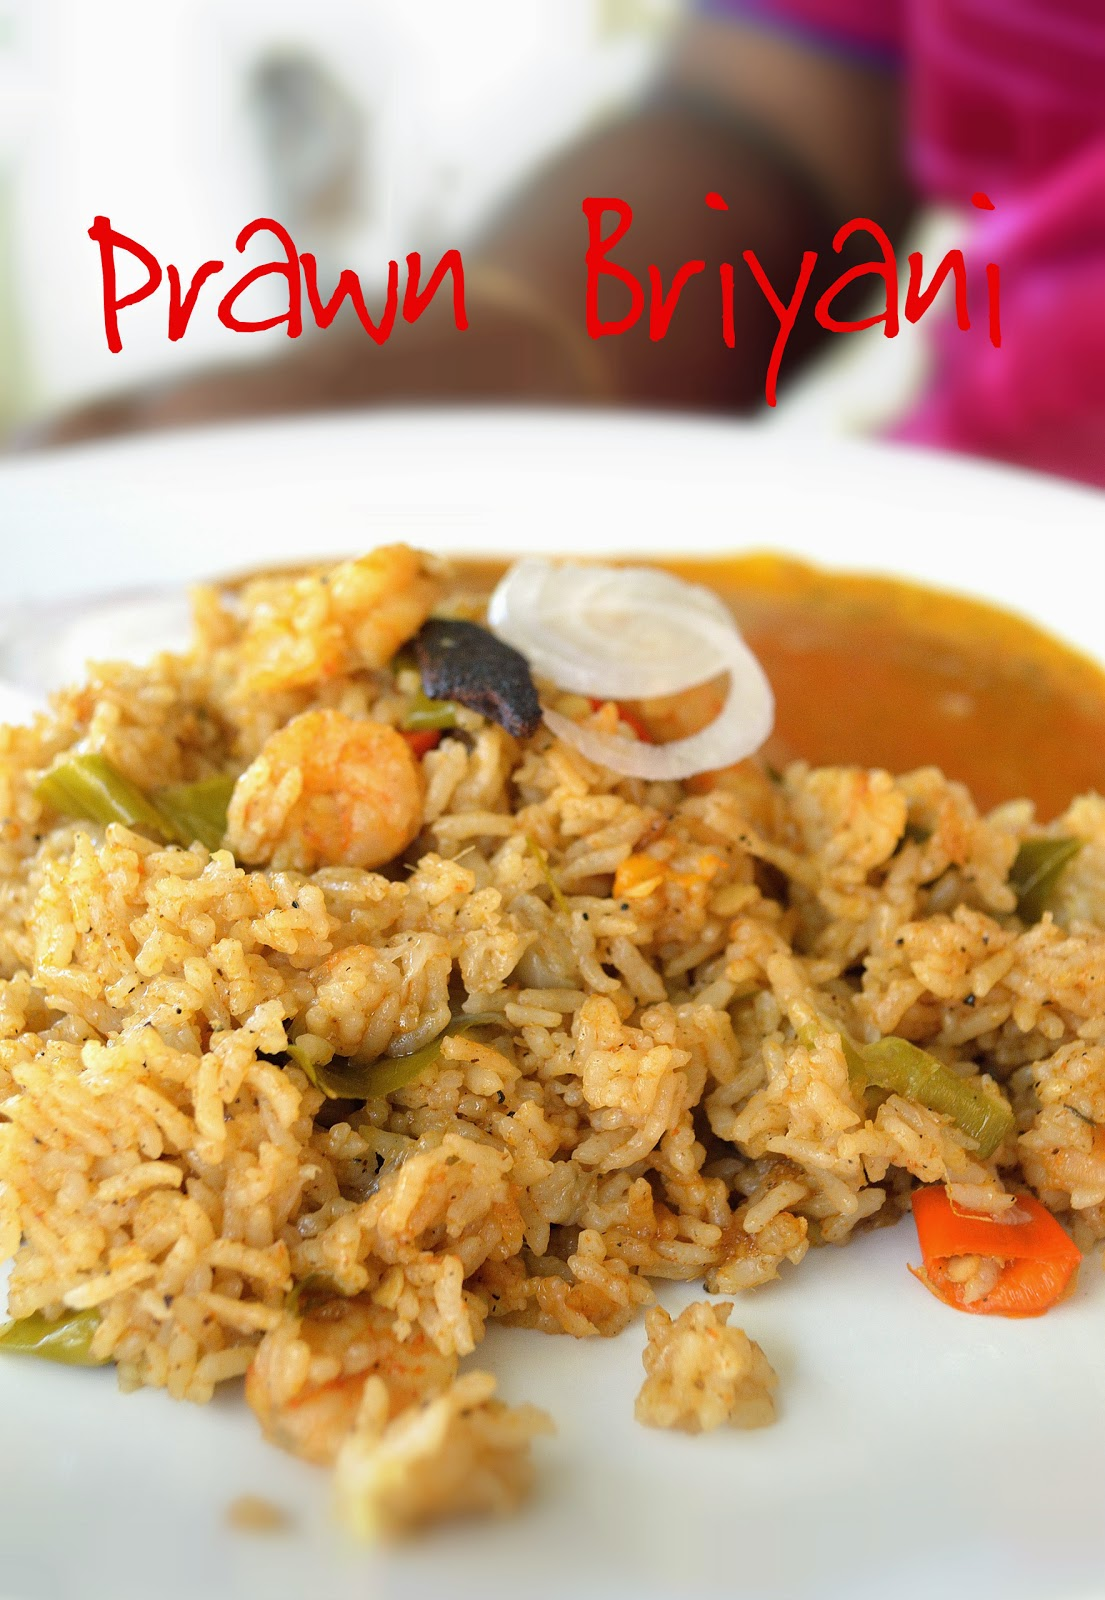 how to make prawn briyani, prawn briyani recipe, era briyani